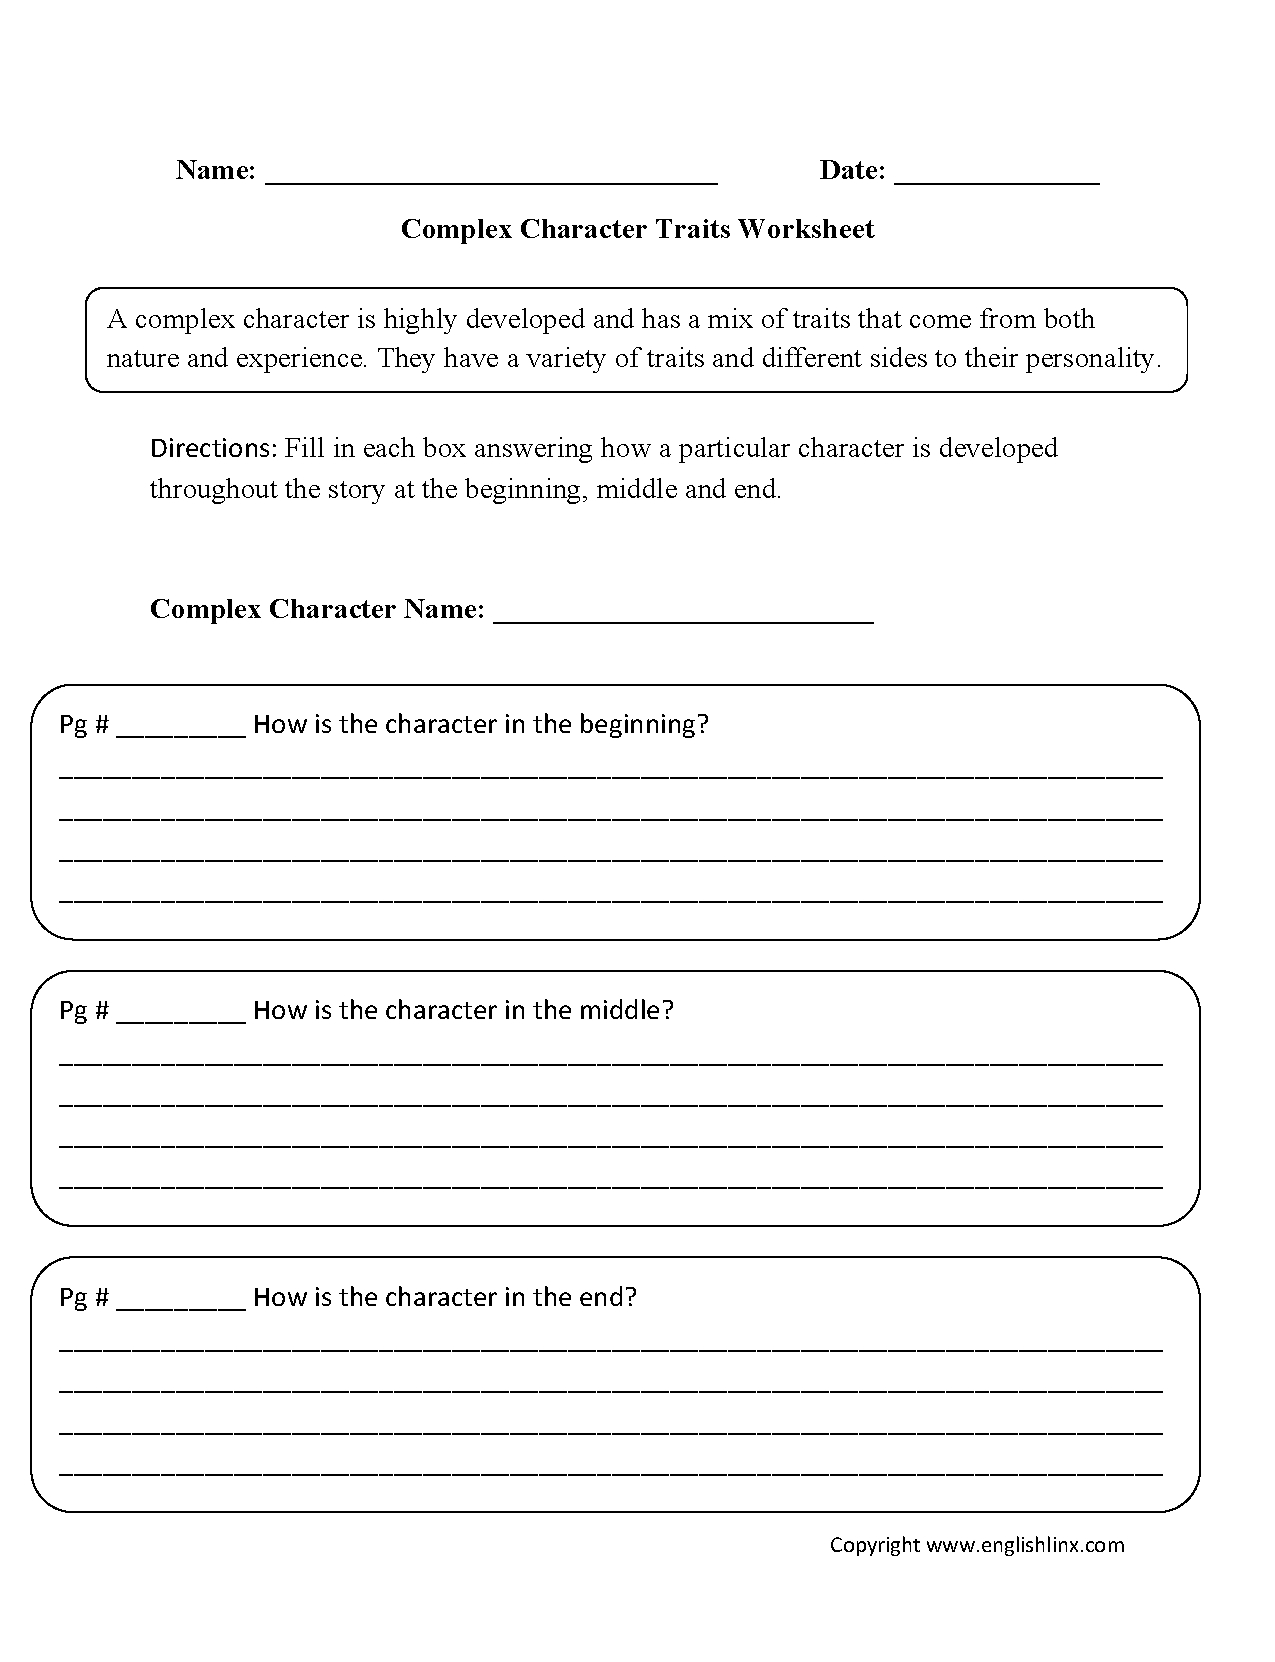 Reading Worksheets  Character Traits Worksheets For Character Traits Worksheet 3Rd Grade